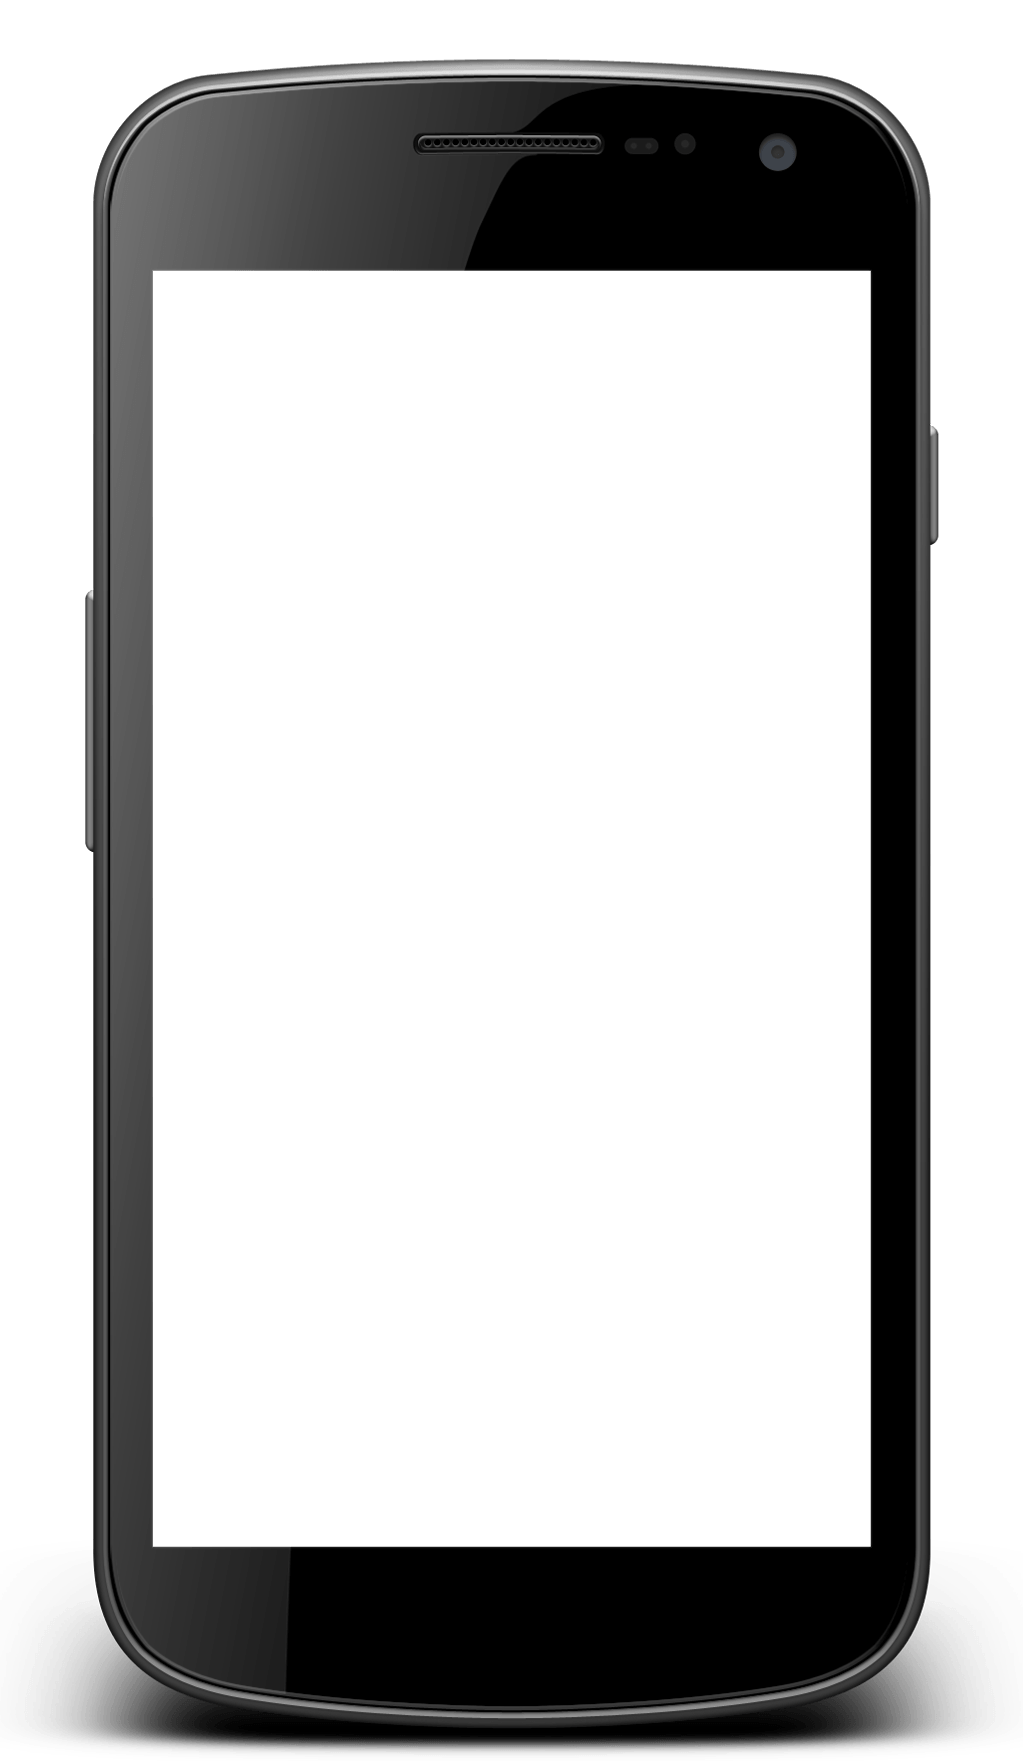 Android Transparent Png Stickpng